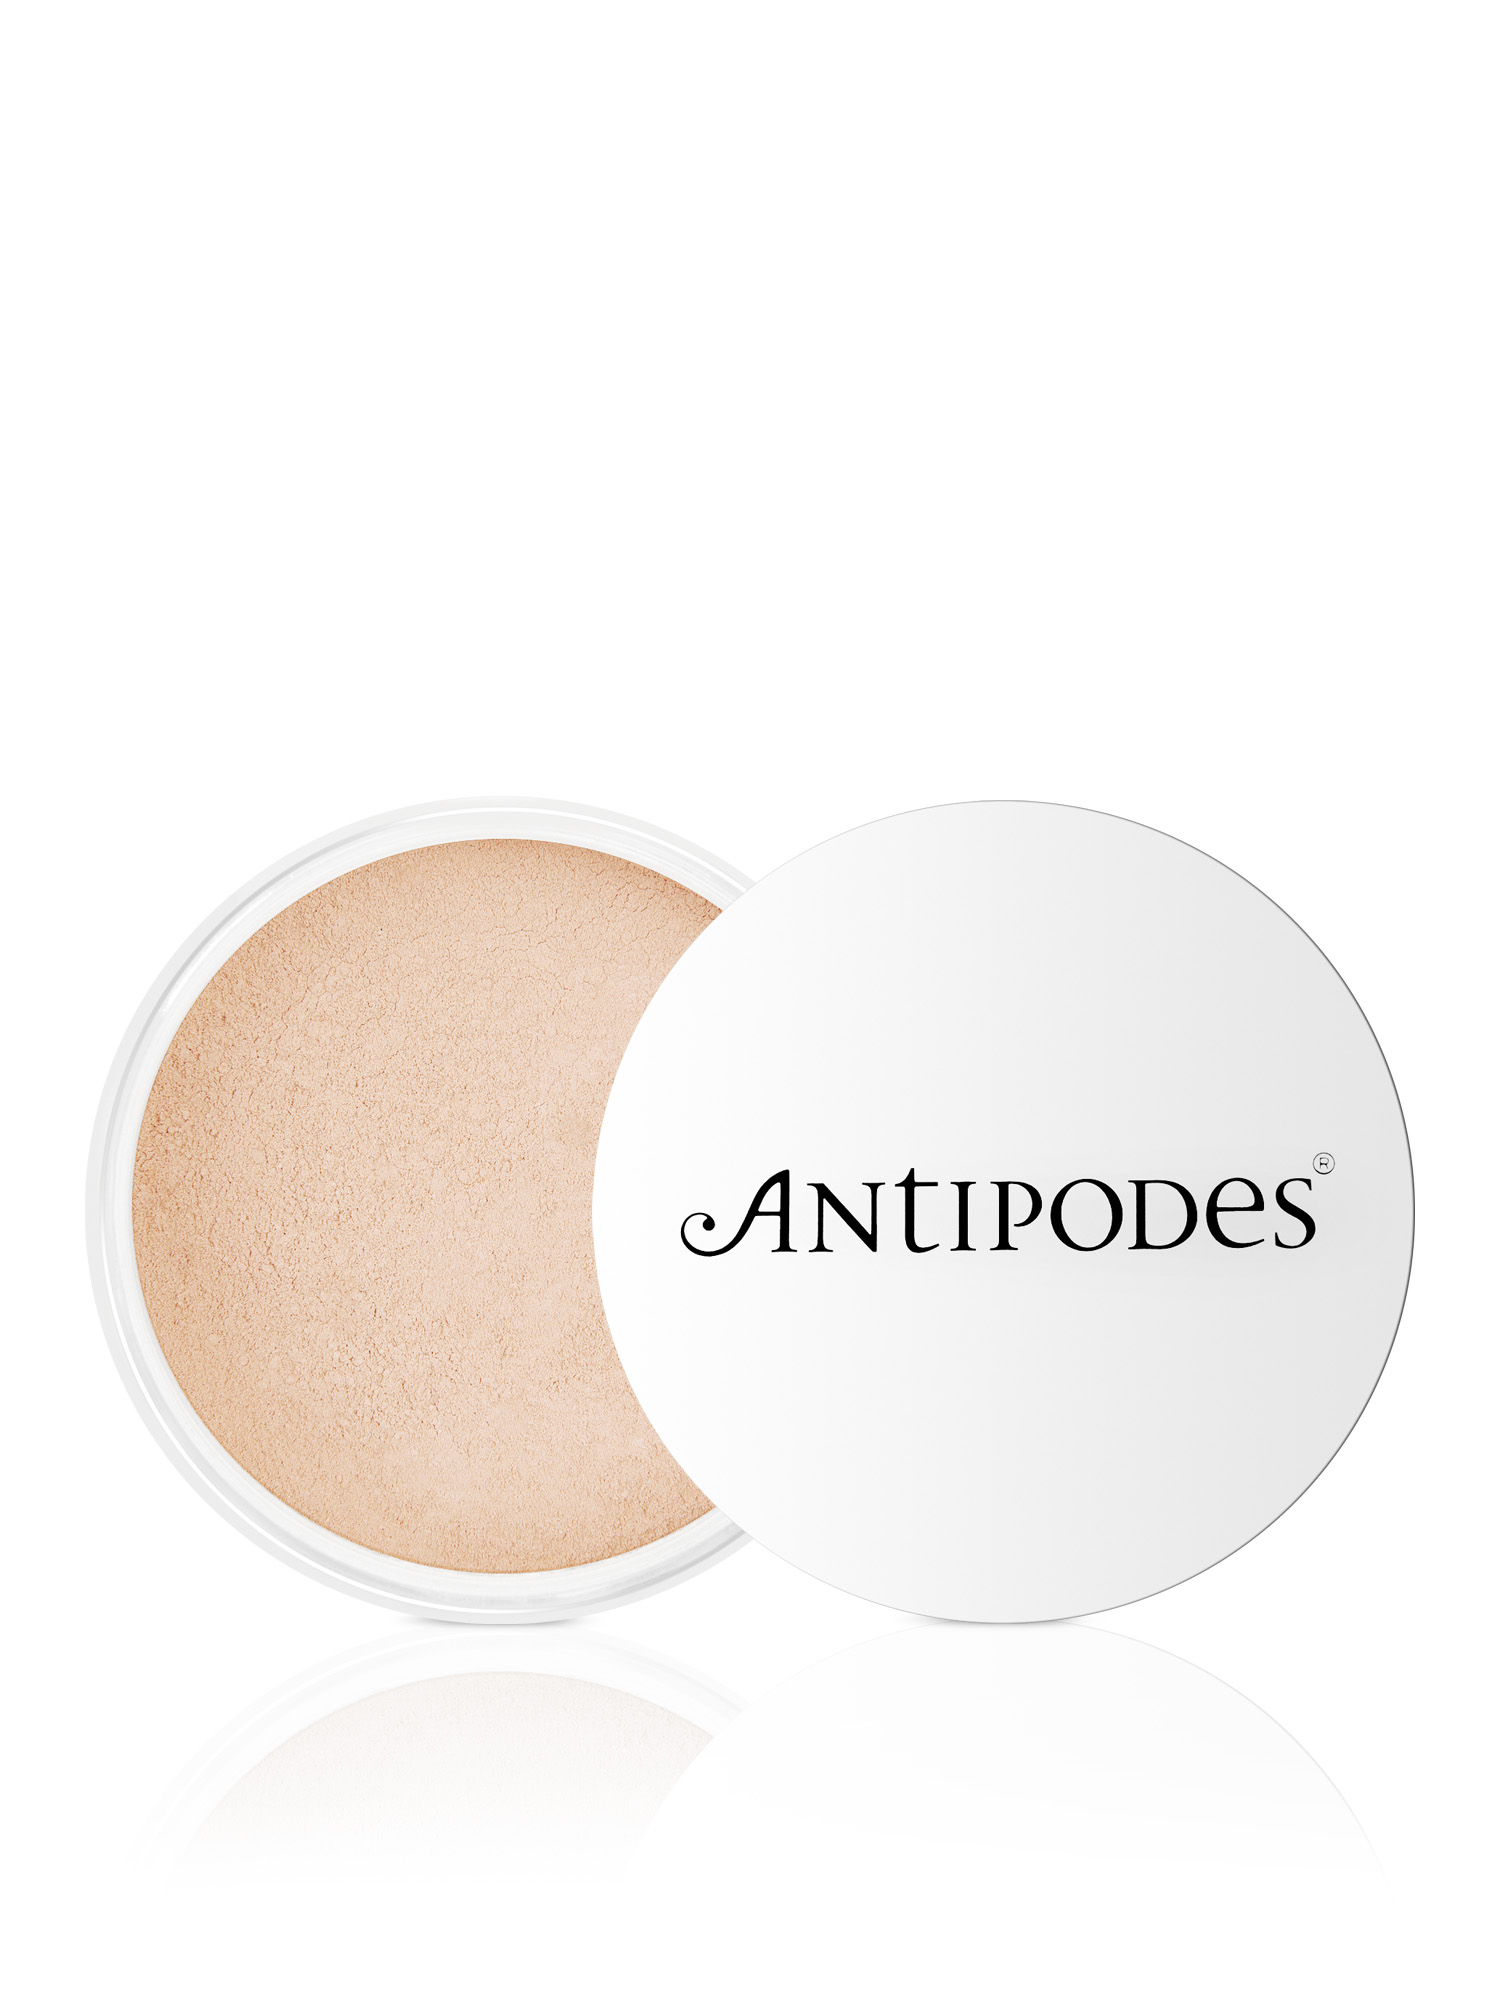 Antipodes Performance Plus Mineral Foundation with SPF 15 - Pale Pink (01)